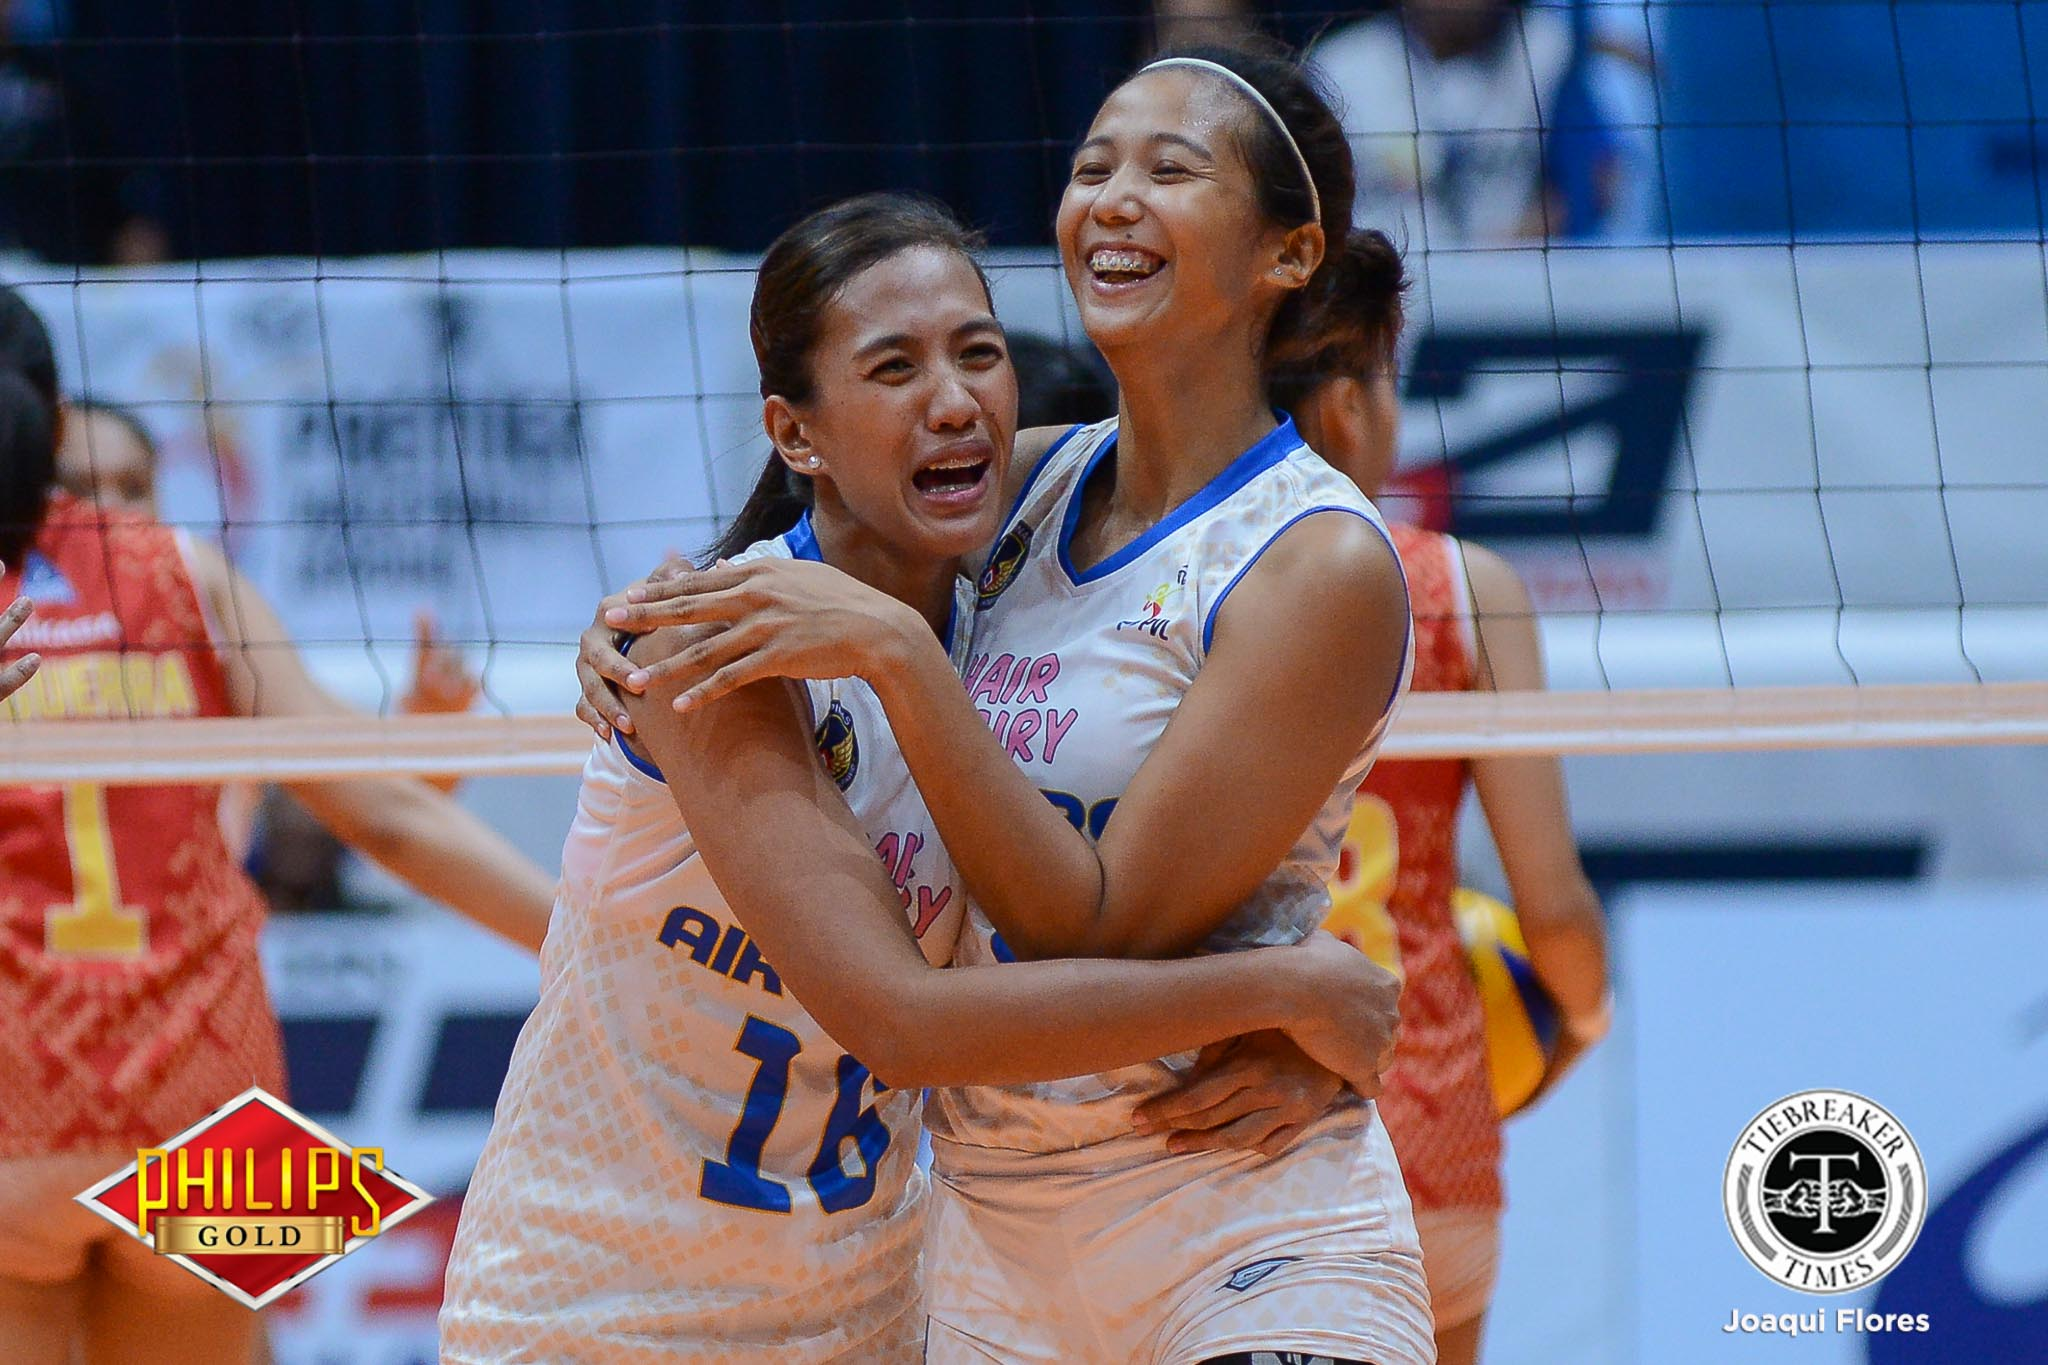 Philippine Sports News - Tiebreaker Times Resilient Hair Fairy-Air Force snatches fourth win News PVL Volleyball  Wendy Semana Regine Arocha Power Smashers Nes Pamilar Mary Ann Pantino Mary Ann Balmaceda Jovelyn Prado Jasper Jimenez Iari Yongco Air Force Jet Spikers 2017 PVL Women's Open Conference